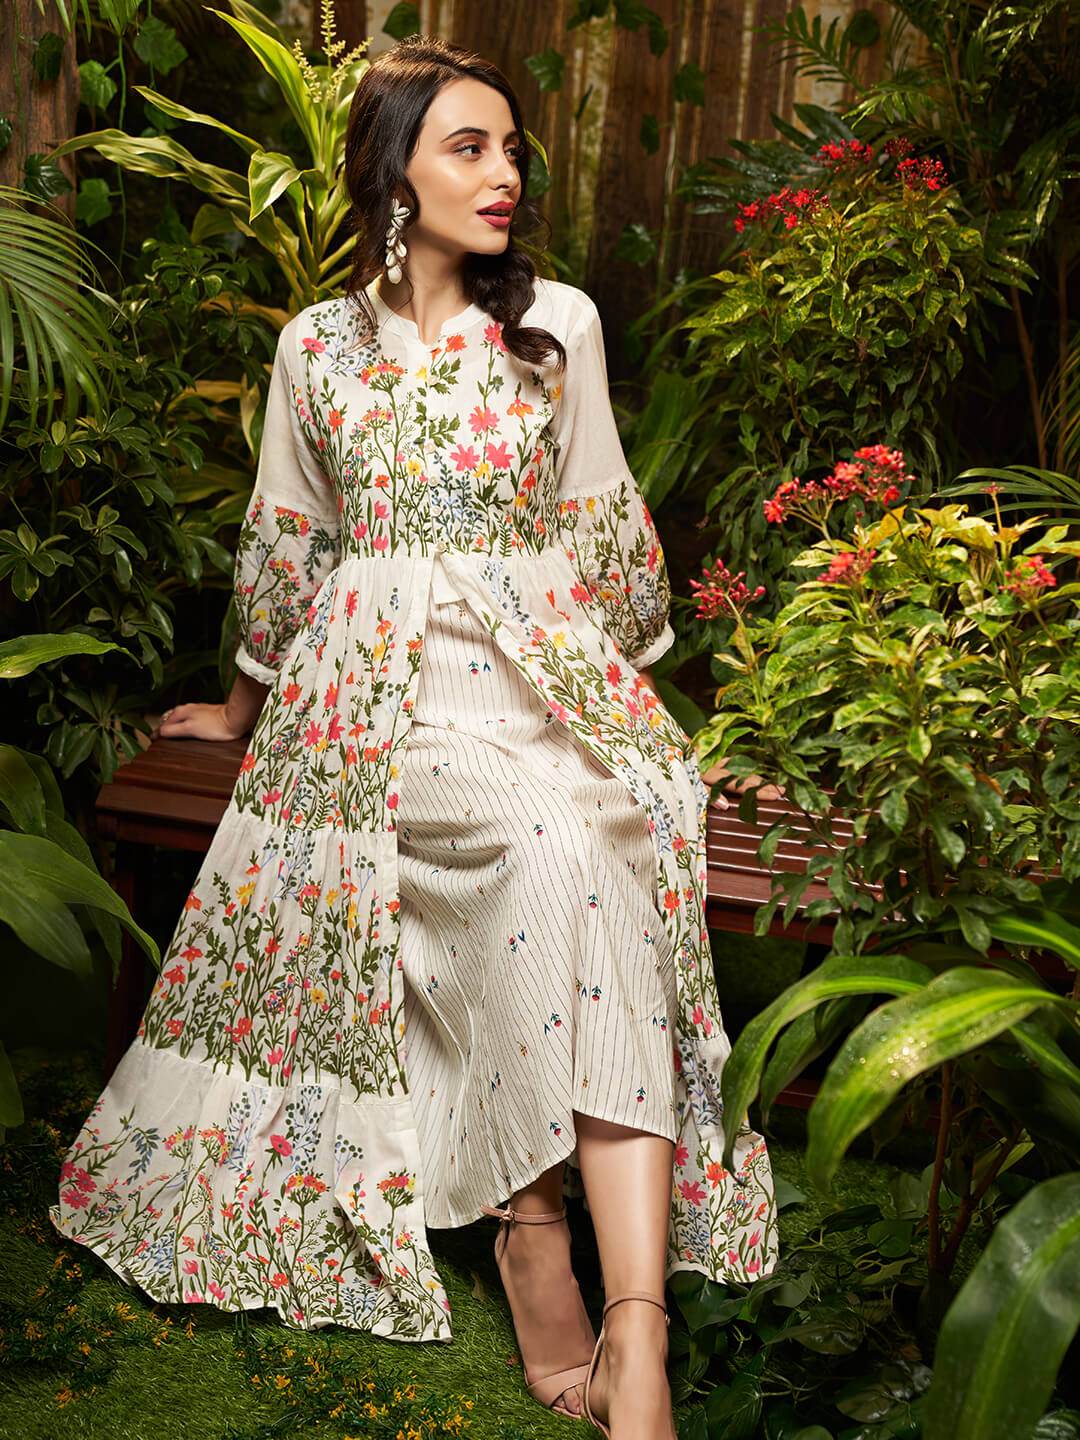 Minimal Striped A-Line Kurta with Vibrant Floral Printed Jacket – Off-White